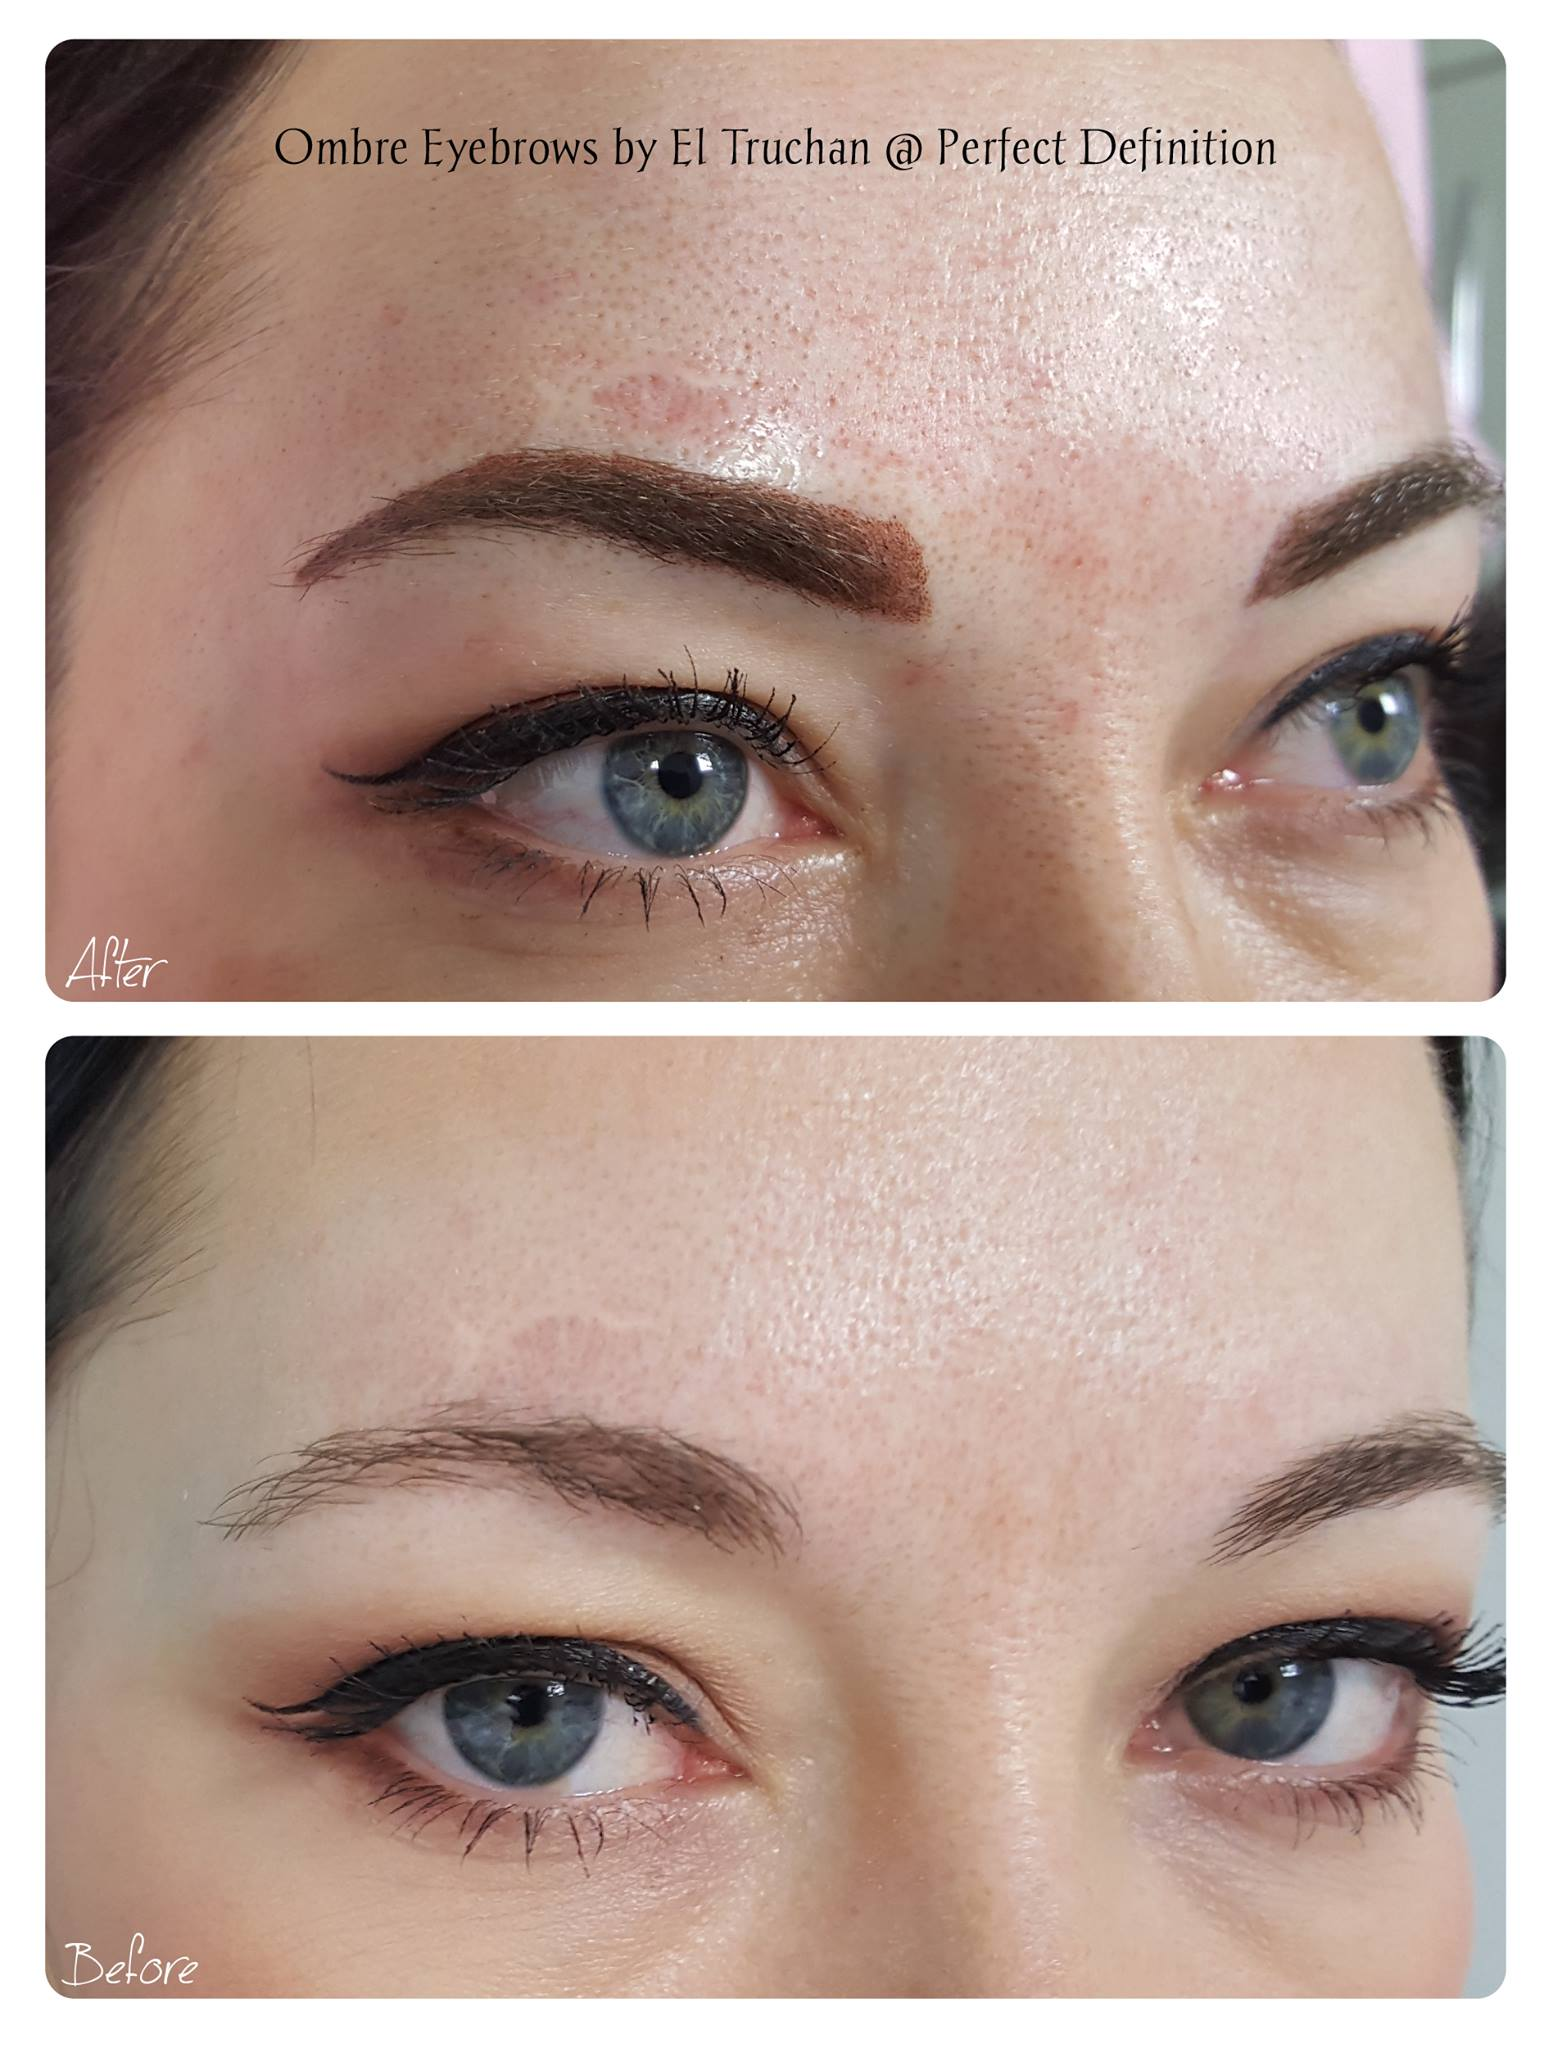 Ombre Eyebrows by El Truchan